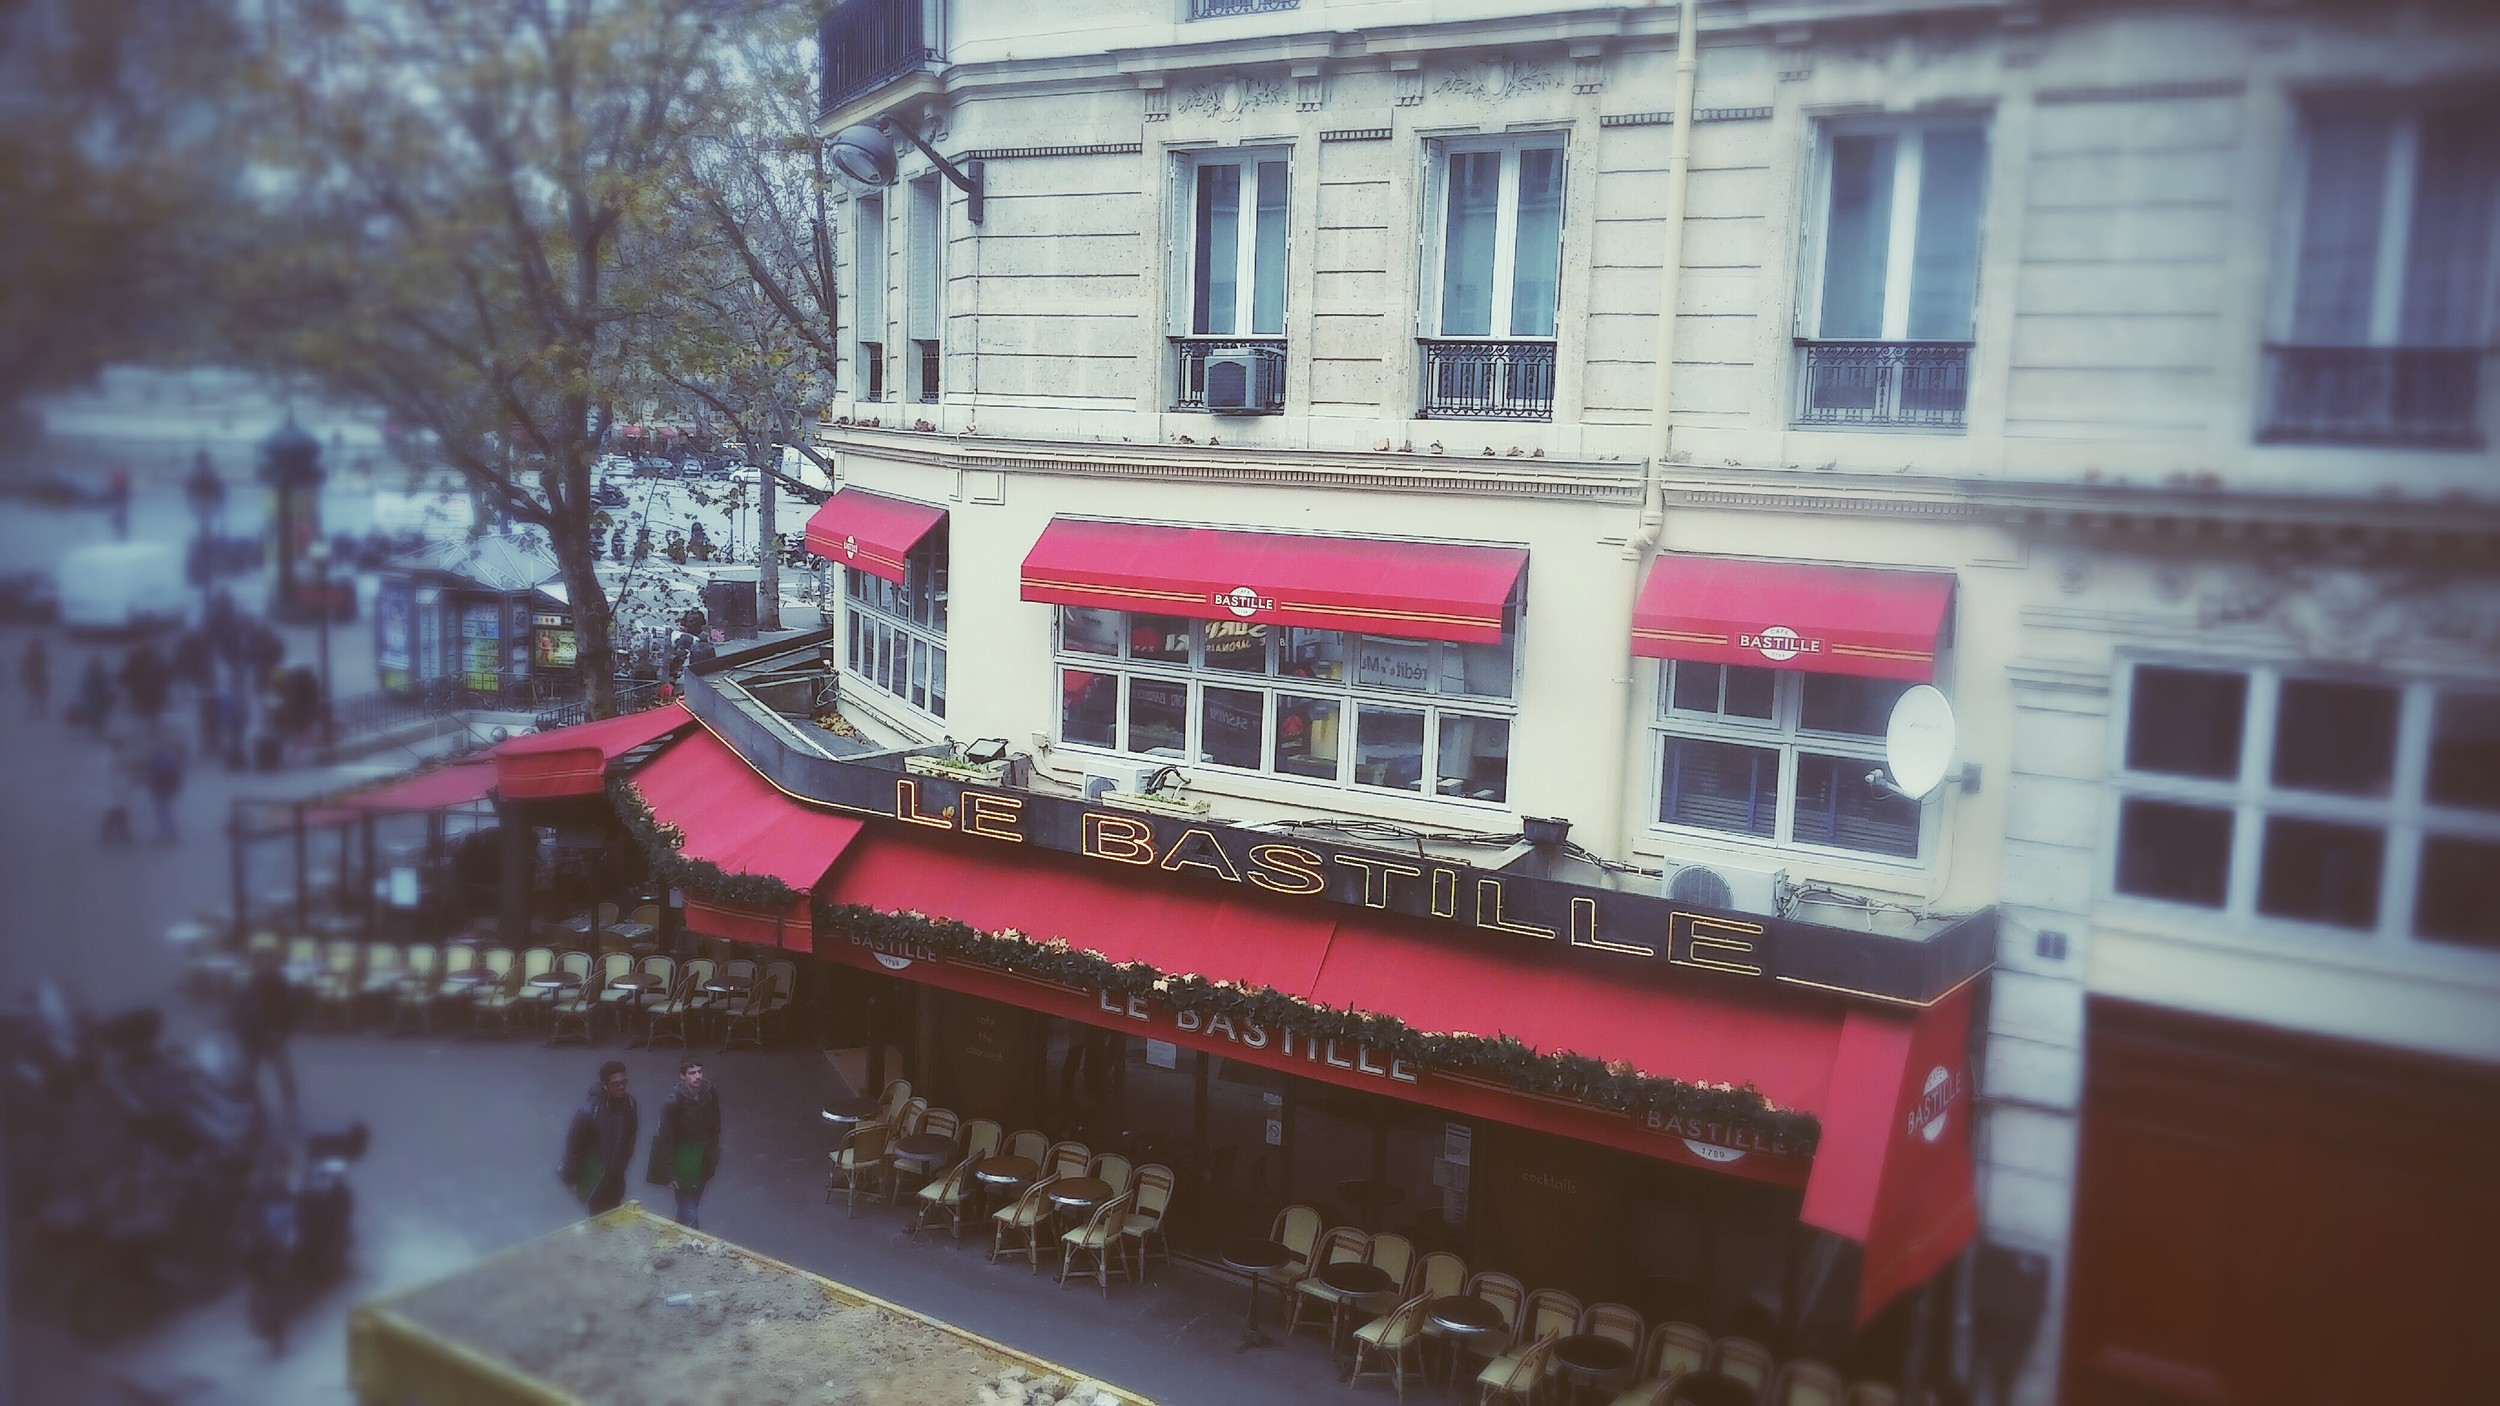 View from my room at the  Hotel Royal Bastille